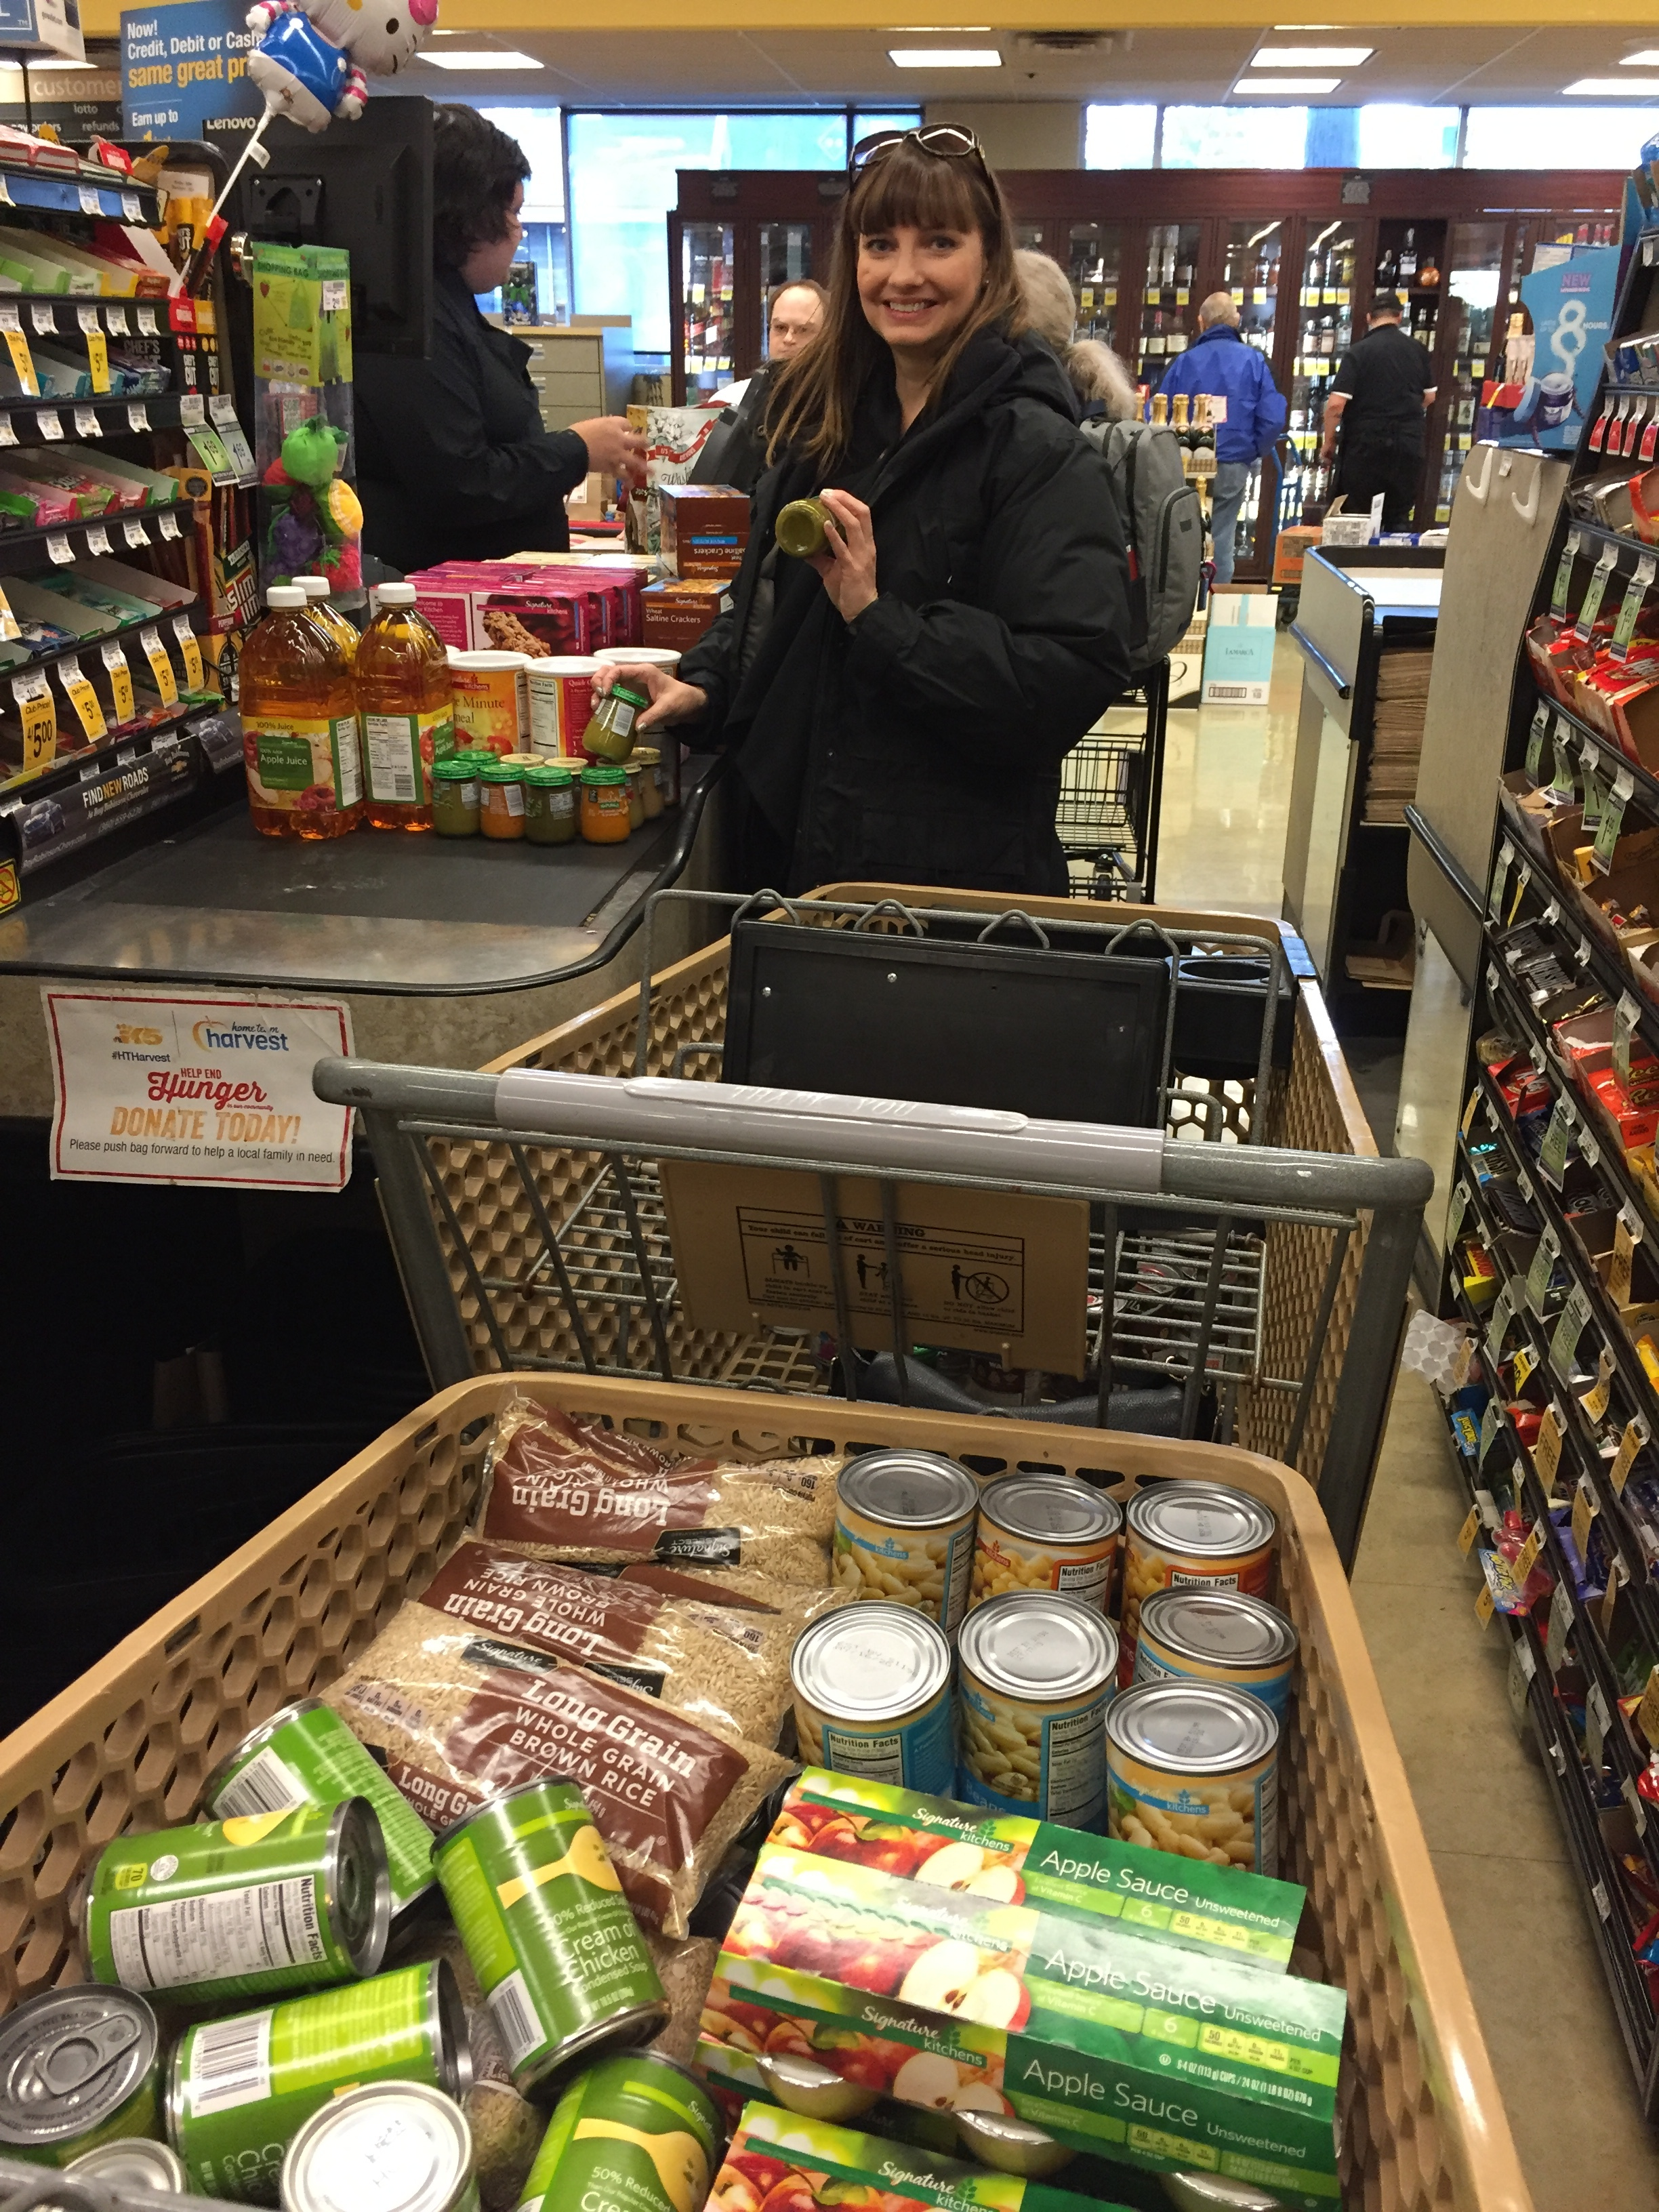 Holiday Sharing Campaign: 300 lbs of food for the Food Bank